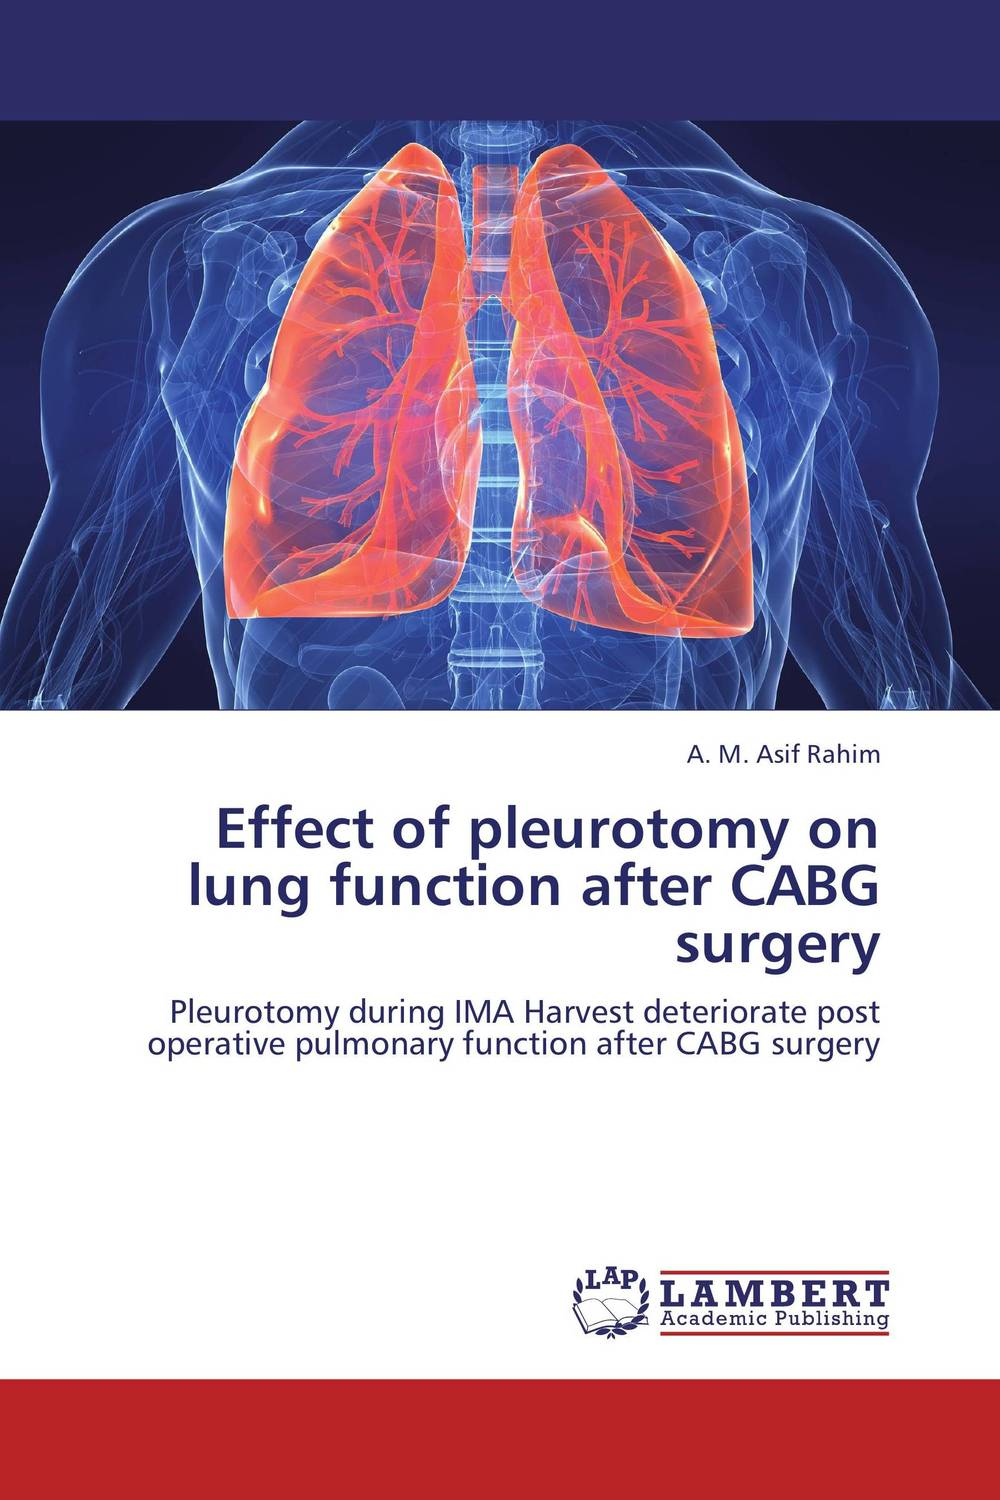 Effect of pleurotomy on lung function after CABG surgery infant artery puncture arm baby artery puncture arm training model